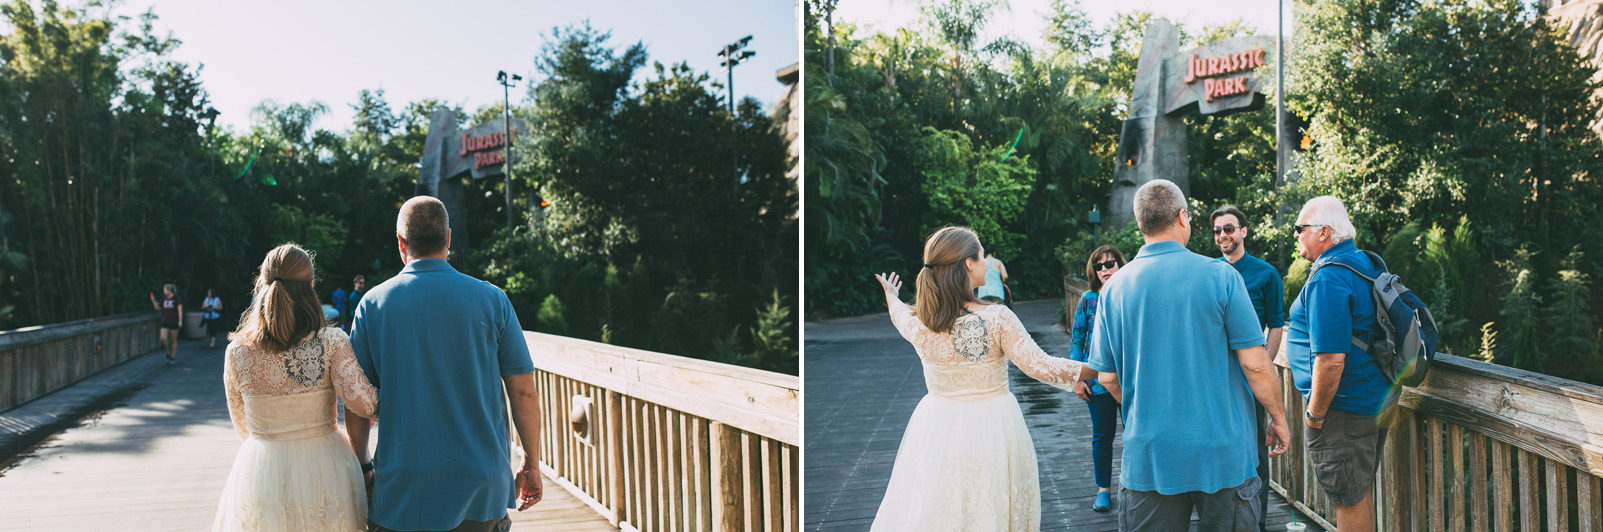 bride and groom meet at the bridge